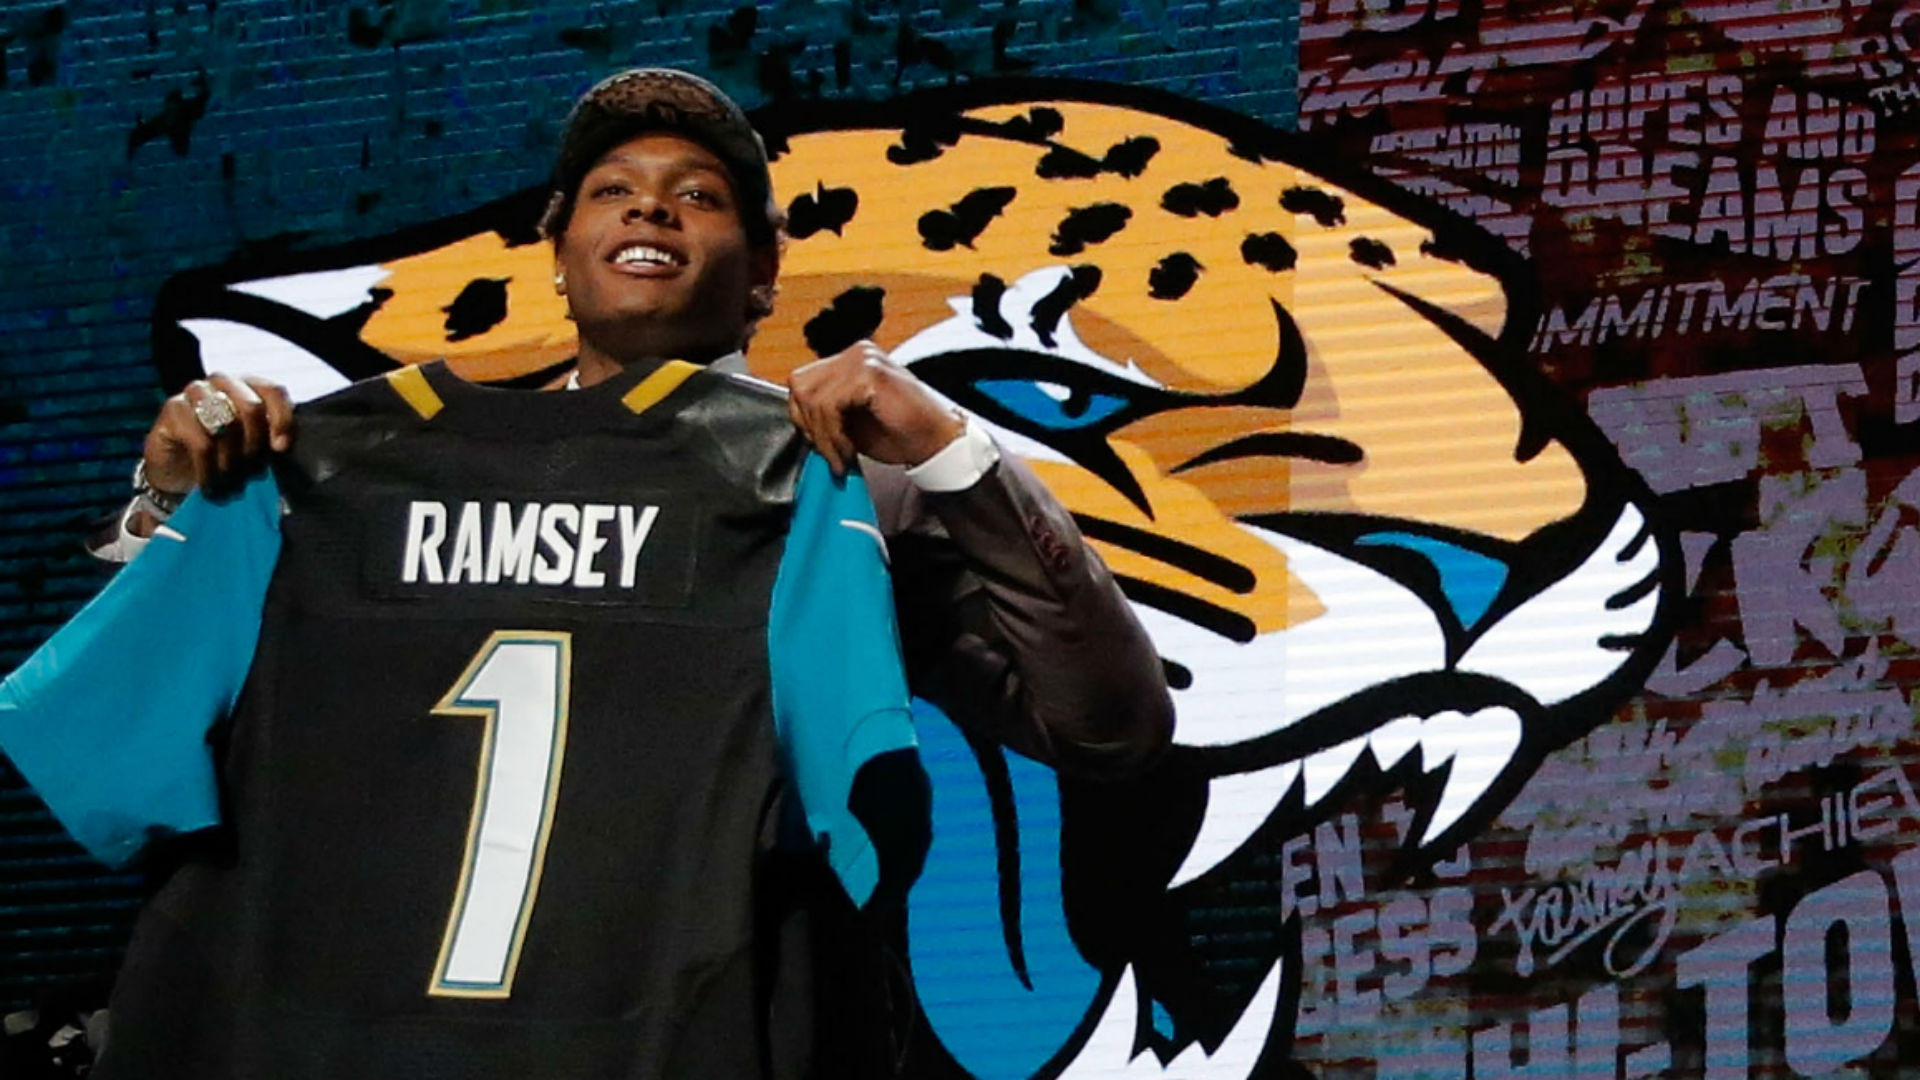 Jalen Ramsey lors de la Draft 2016 (Getty)